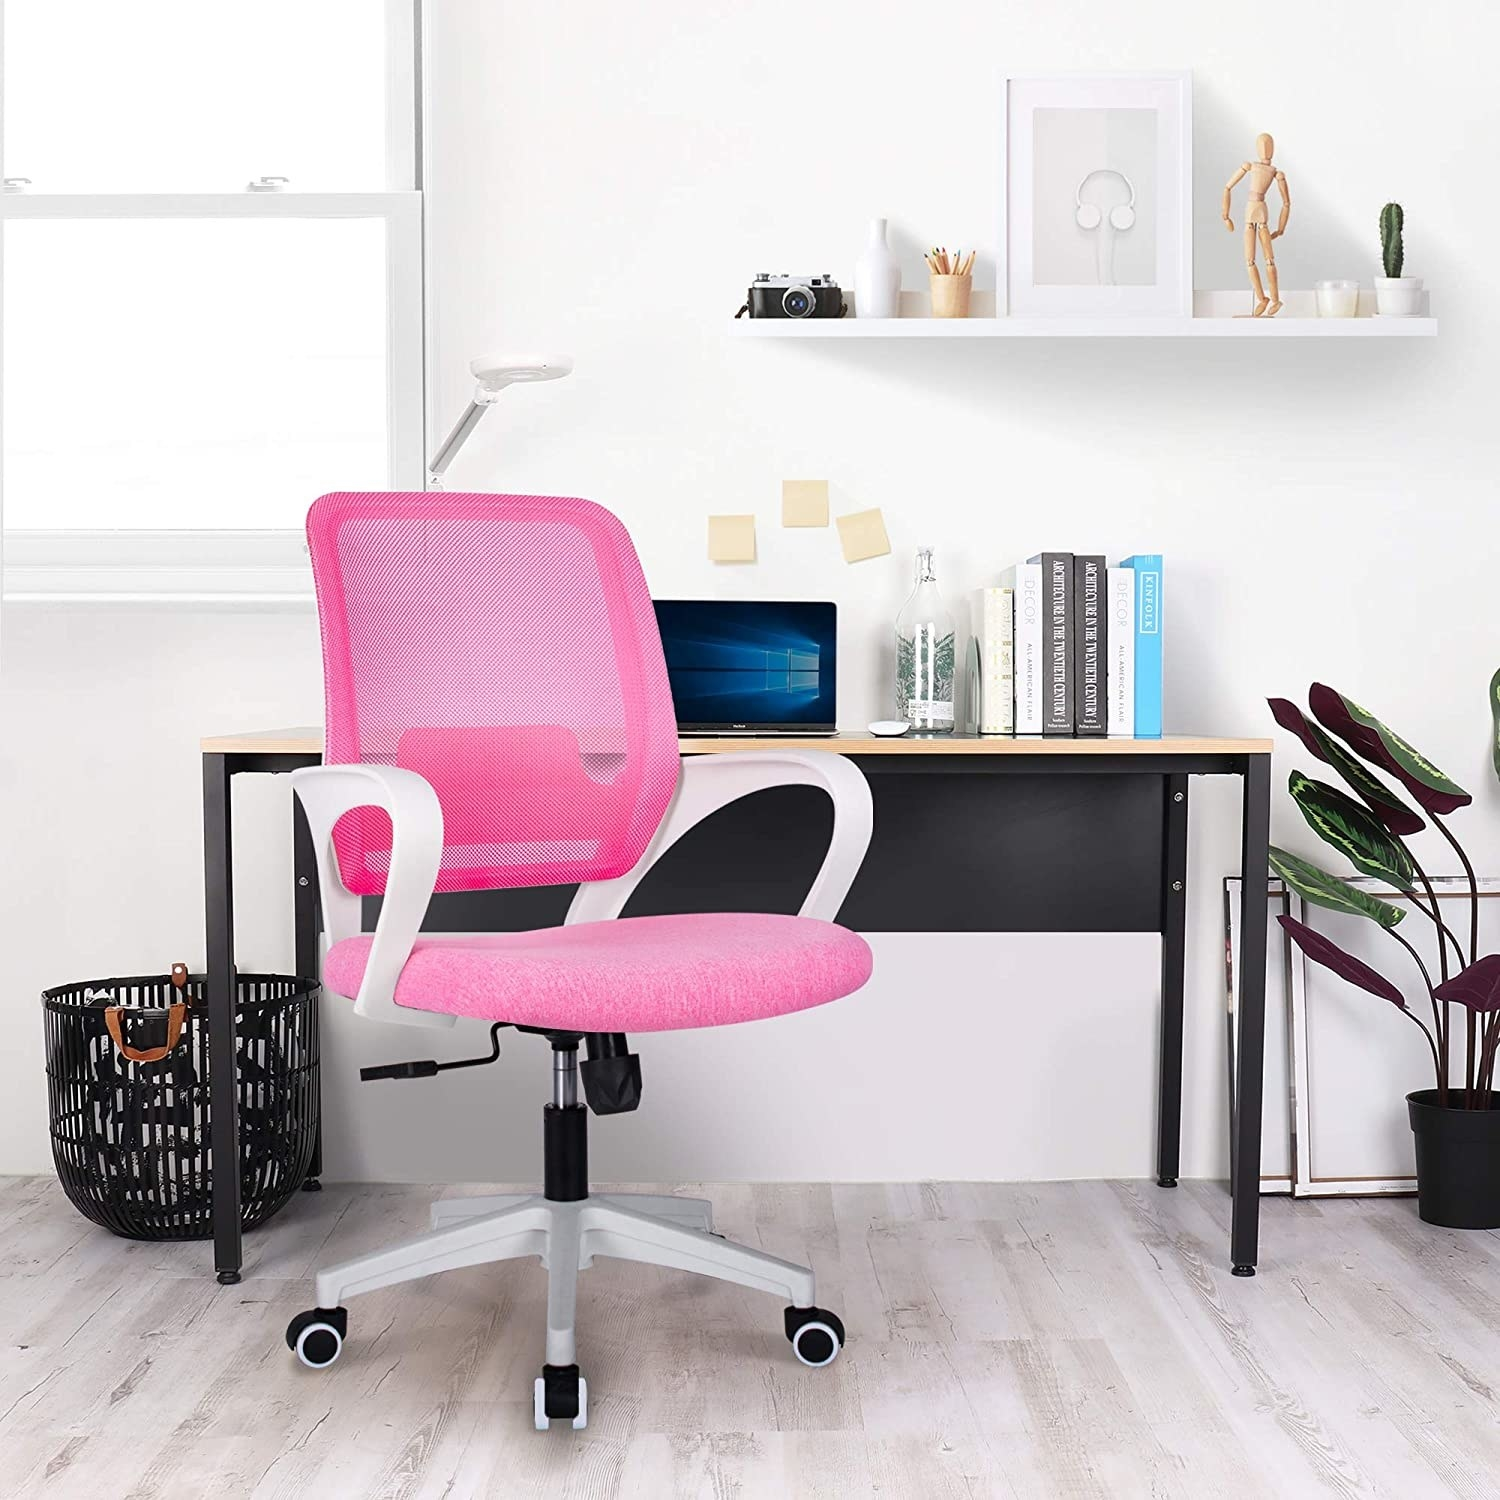 office chair with hot pink mesh back and hot pink cushioned seat, and white armrests and base